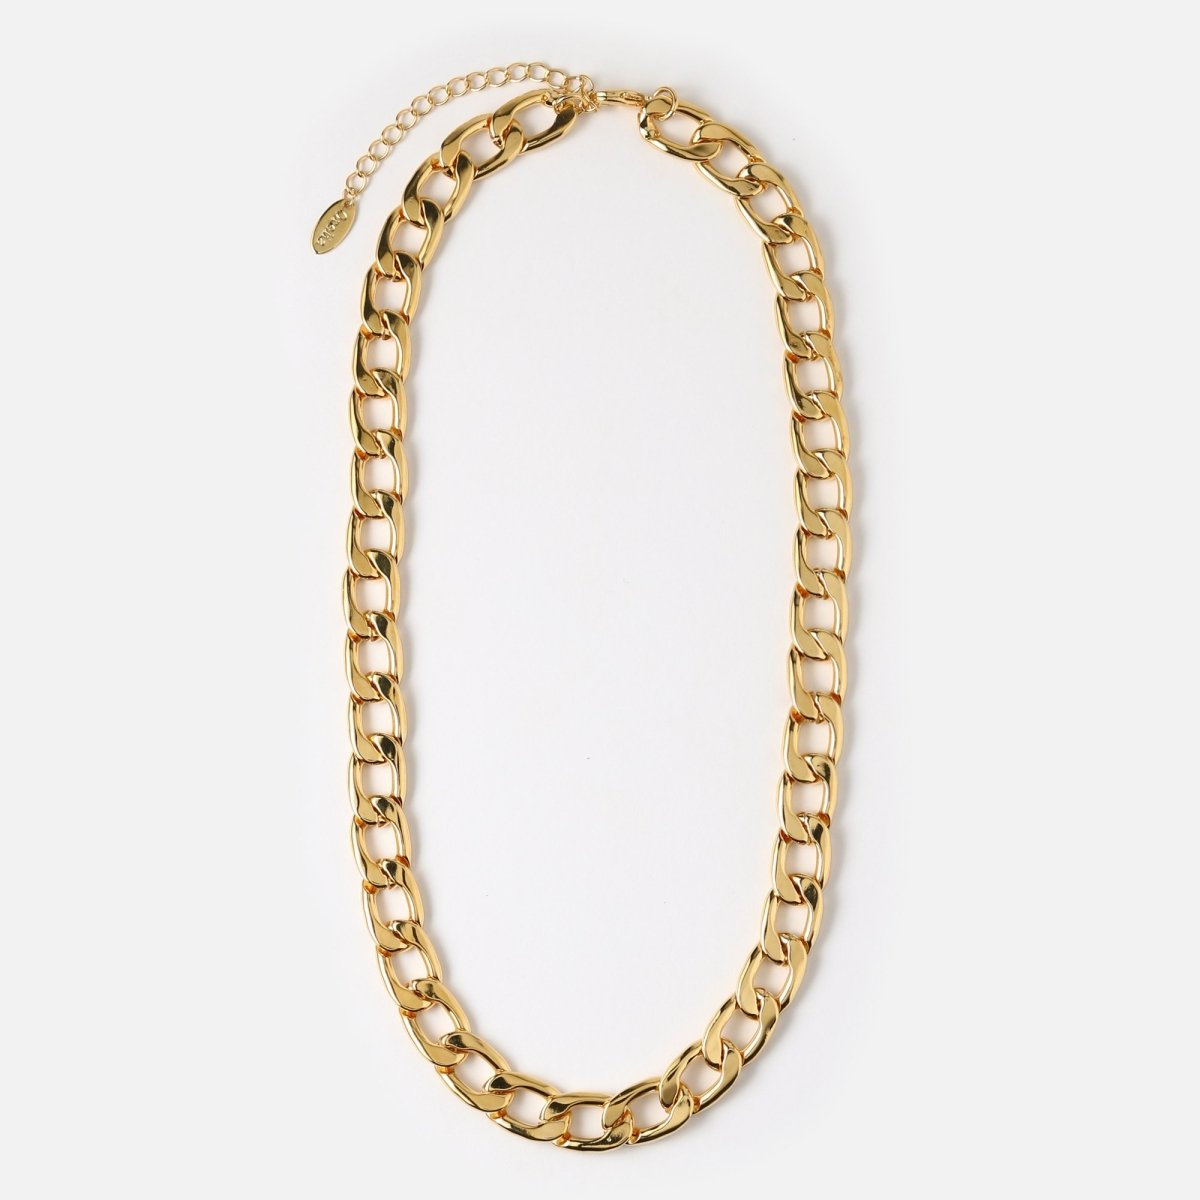 Trendjuwelier Bemelmans - Orelia Chunky Chain Necklace Goldplated